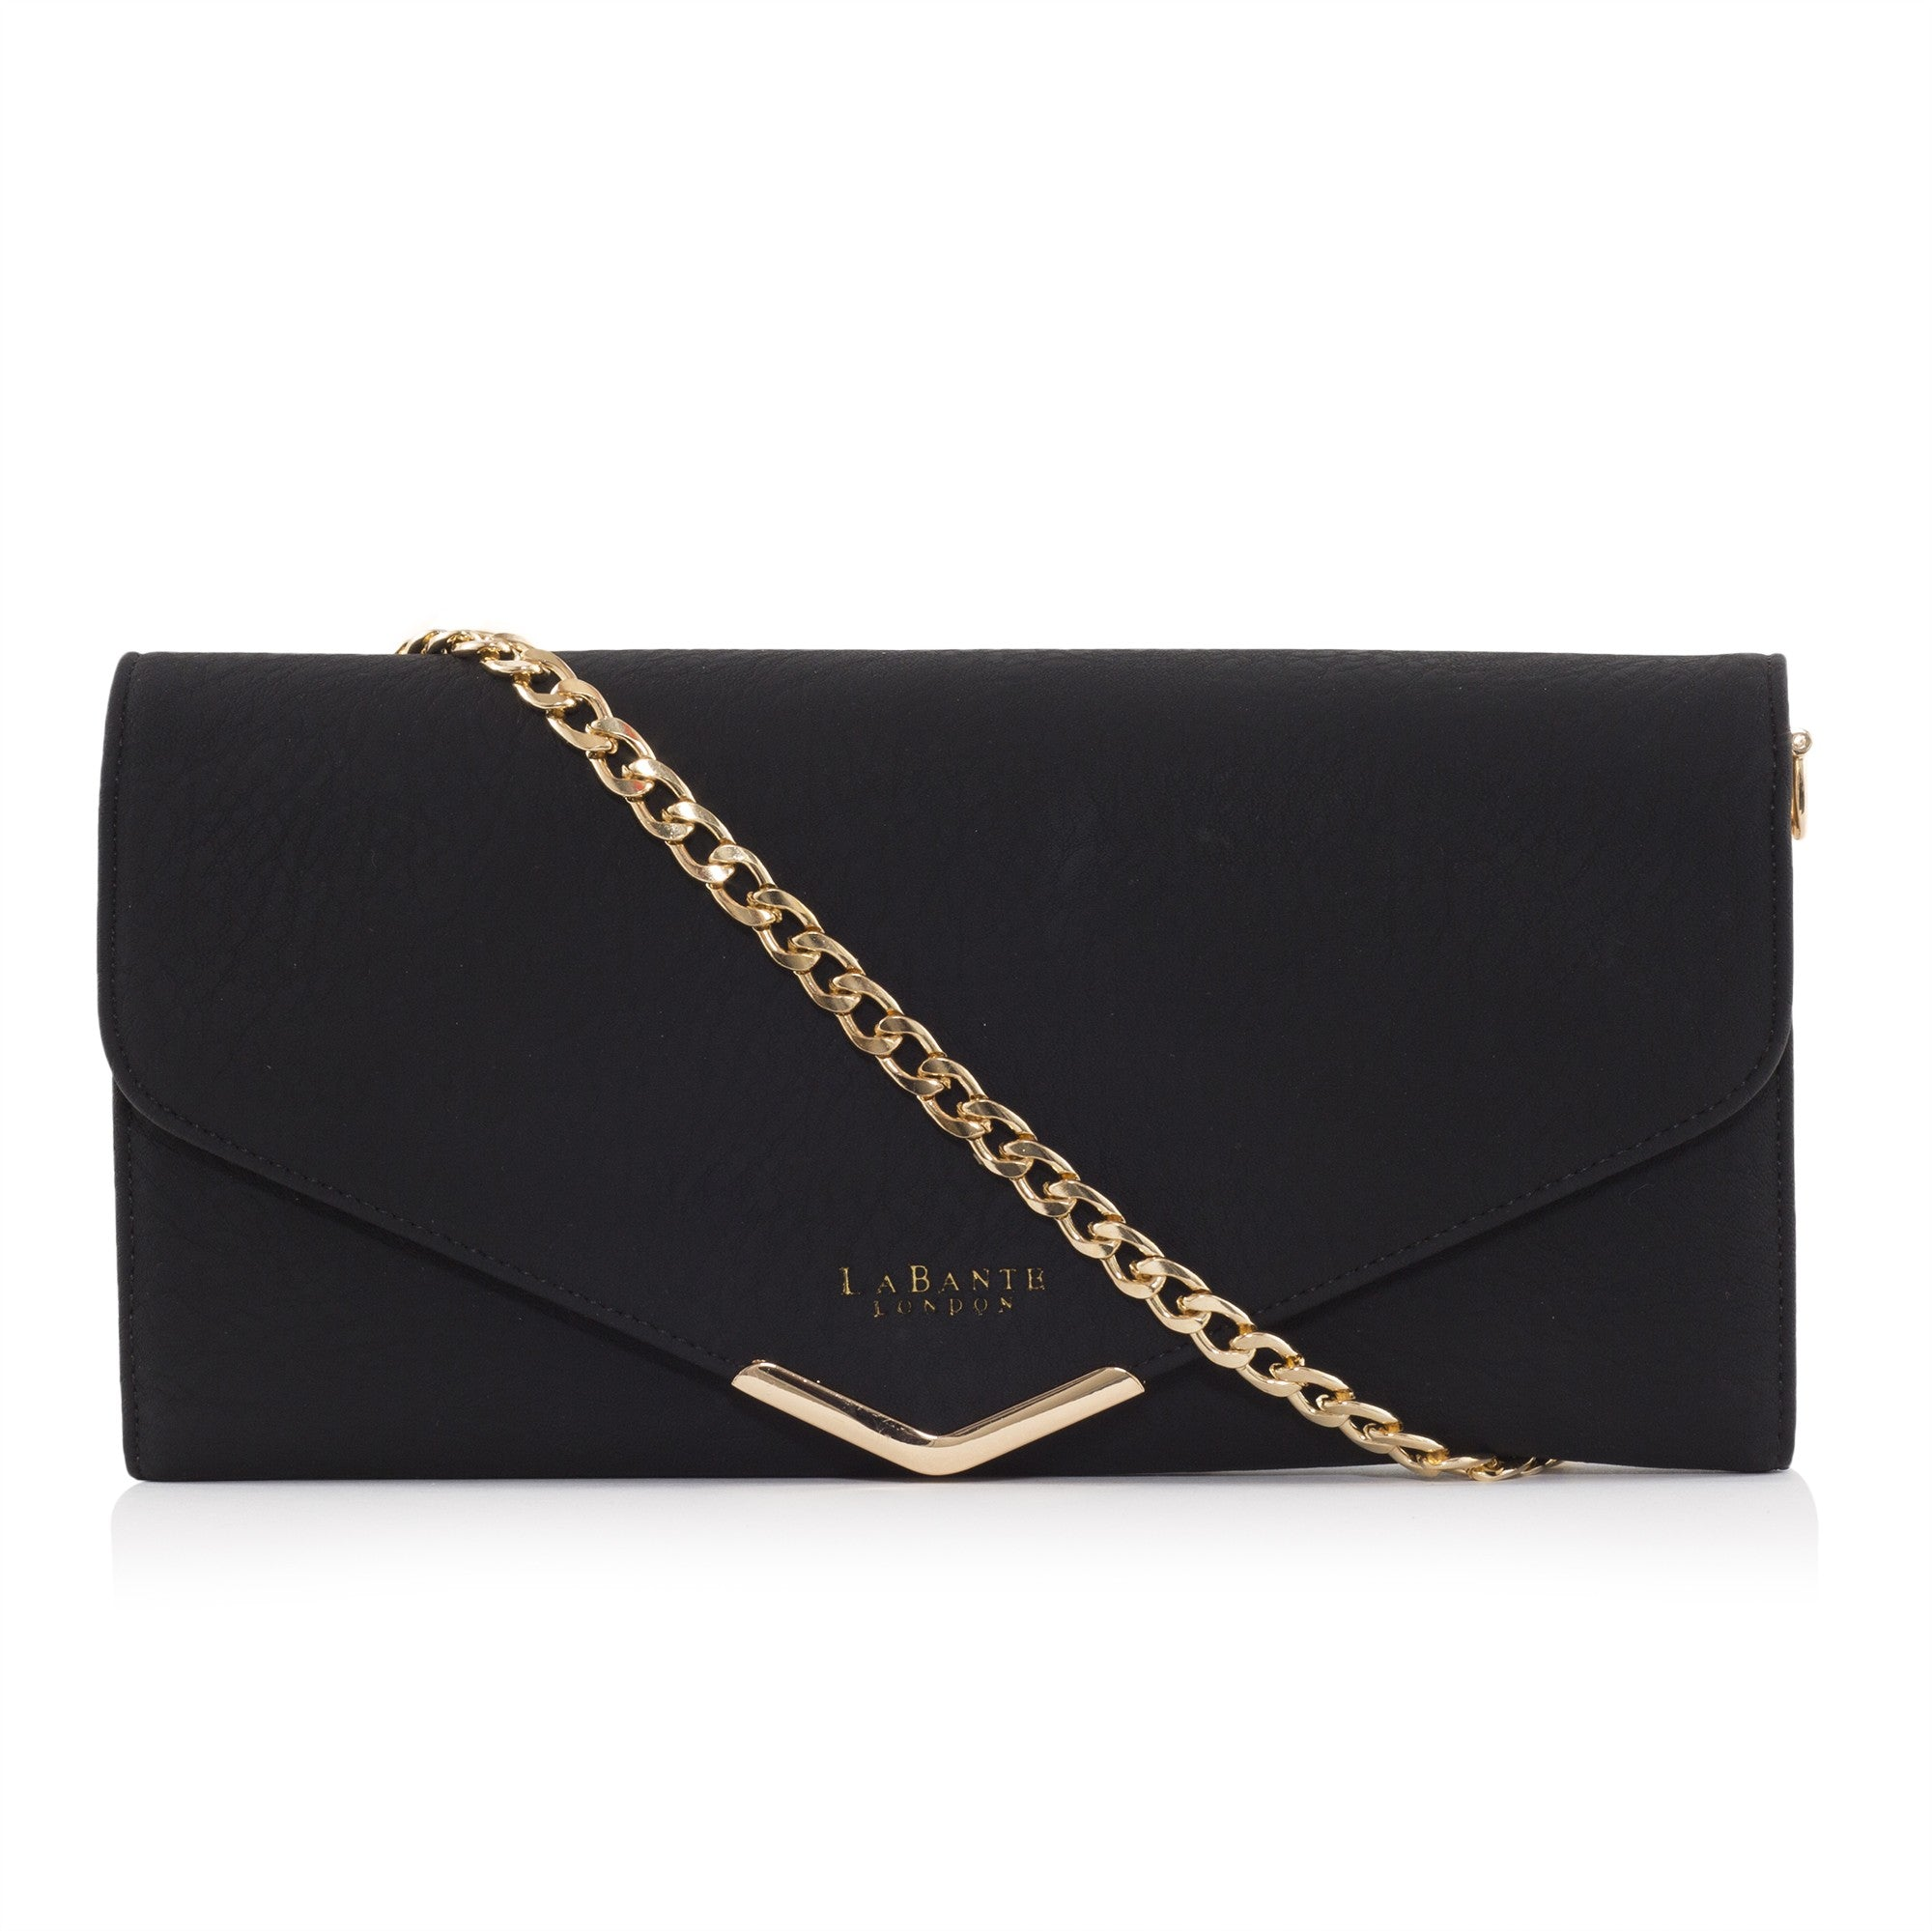 Starling Black purse bag